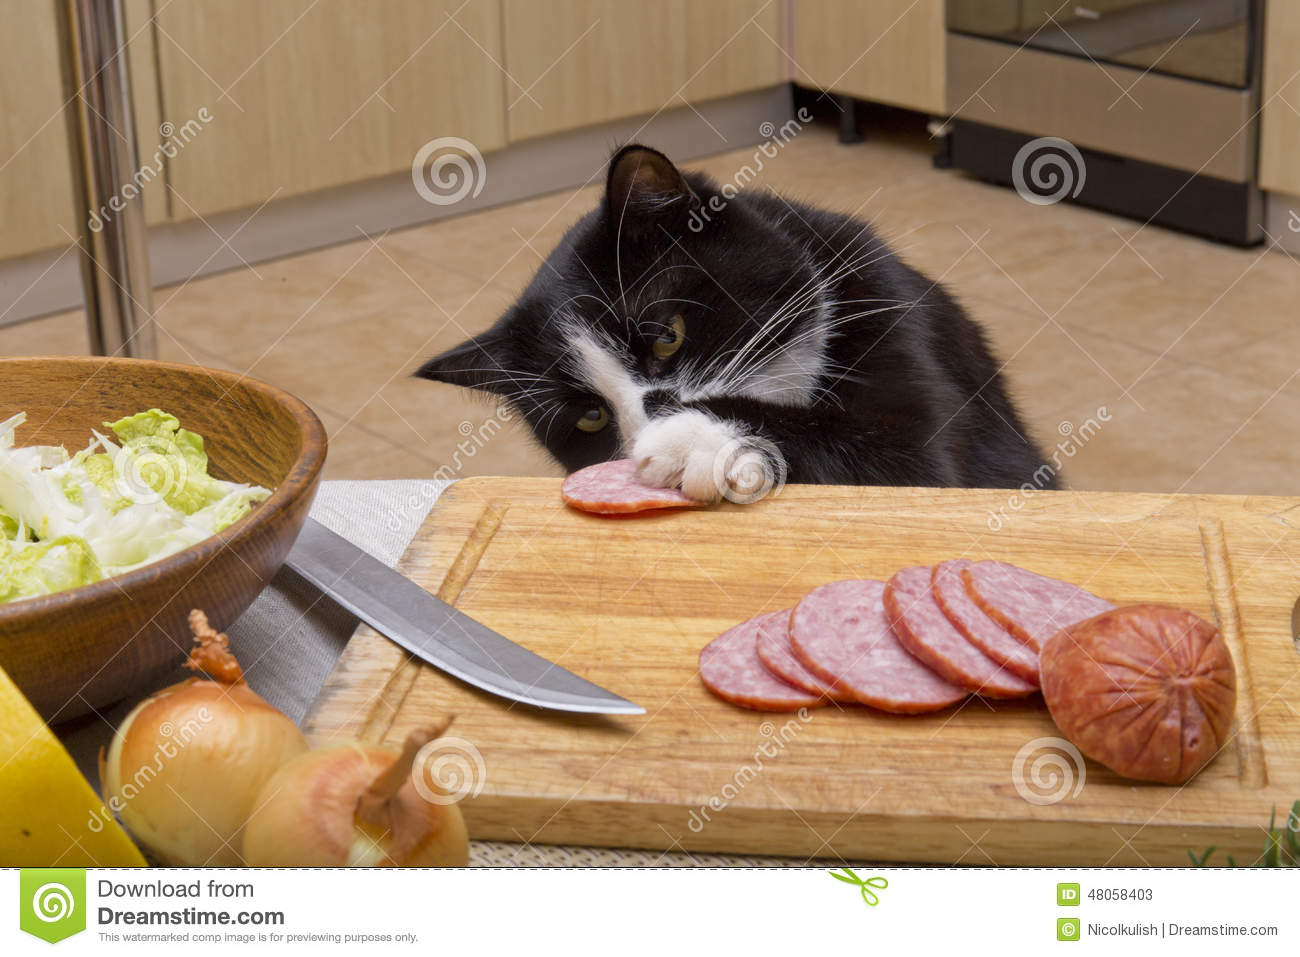 Cat Steals Food From Plate